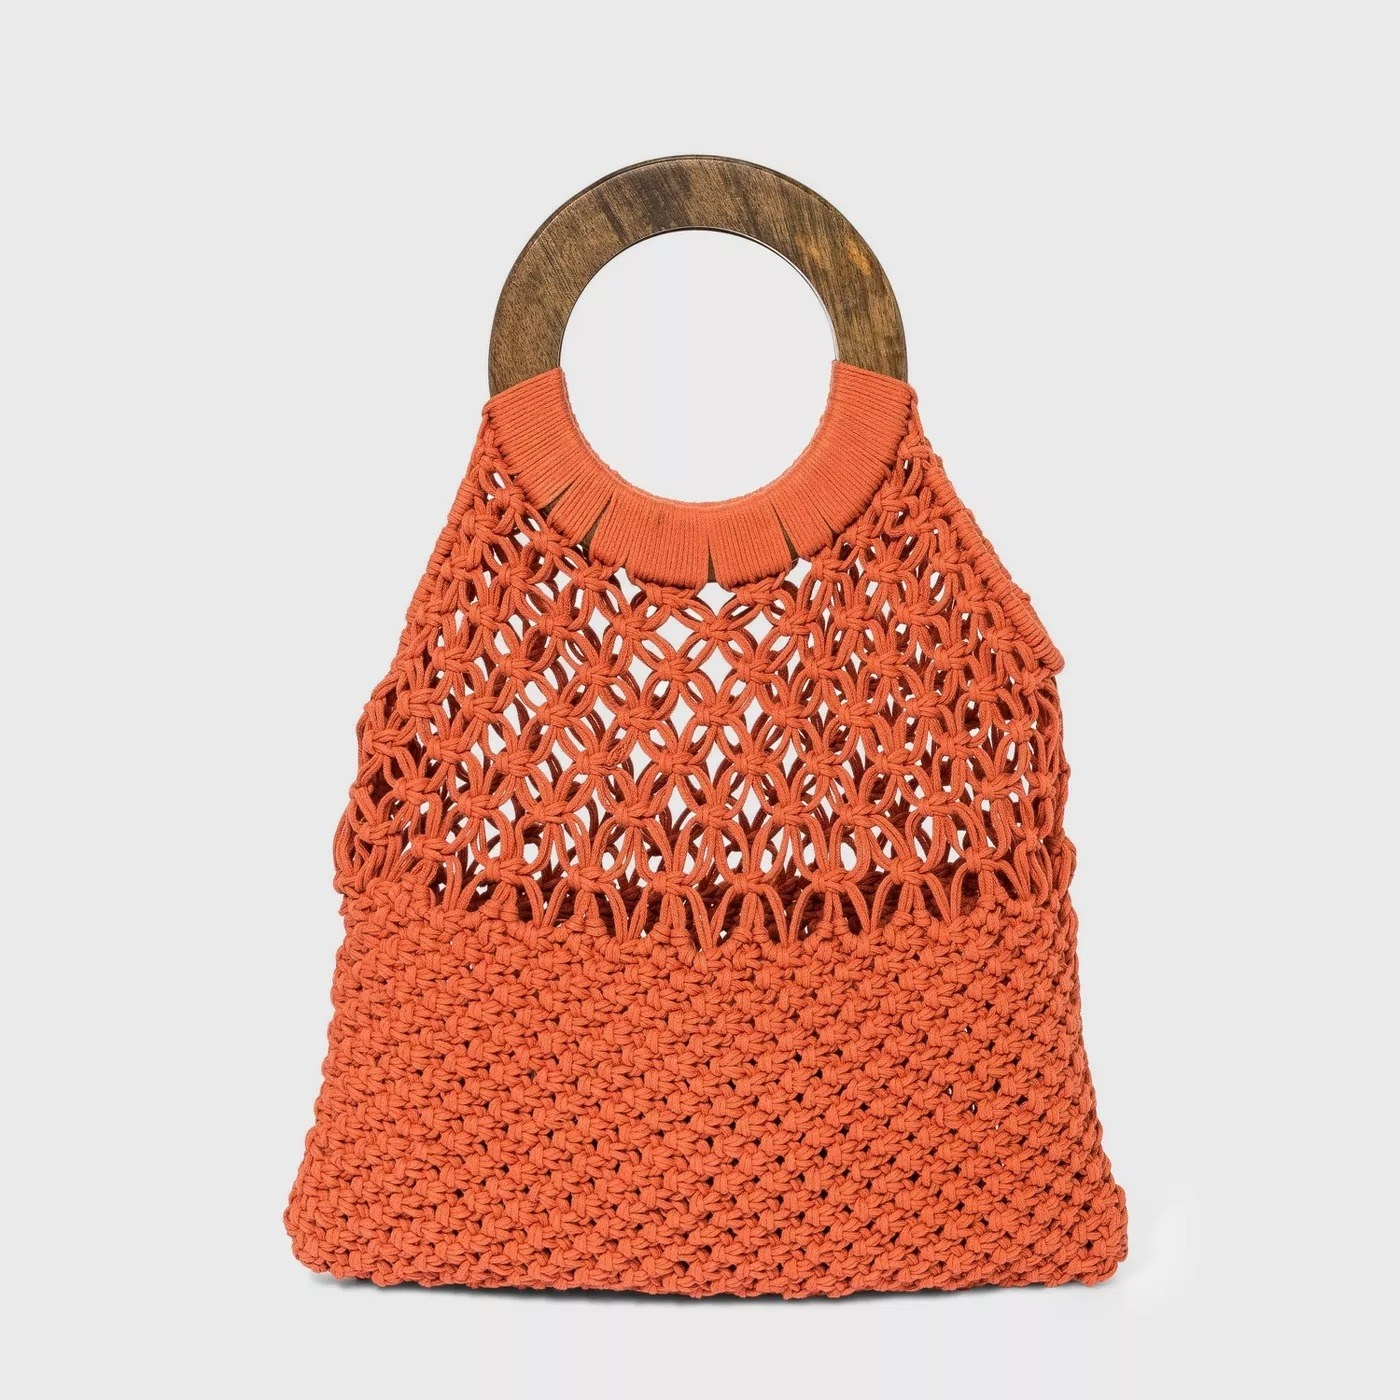 Orange purse with holes, and dark wooden handle